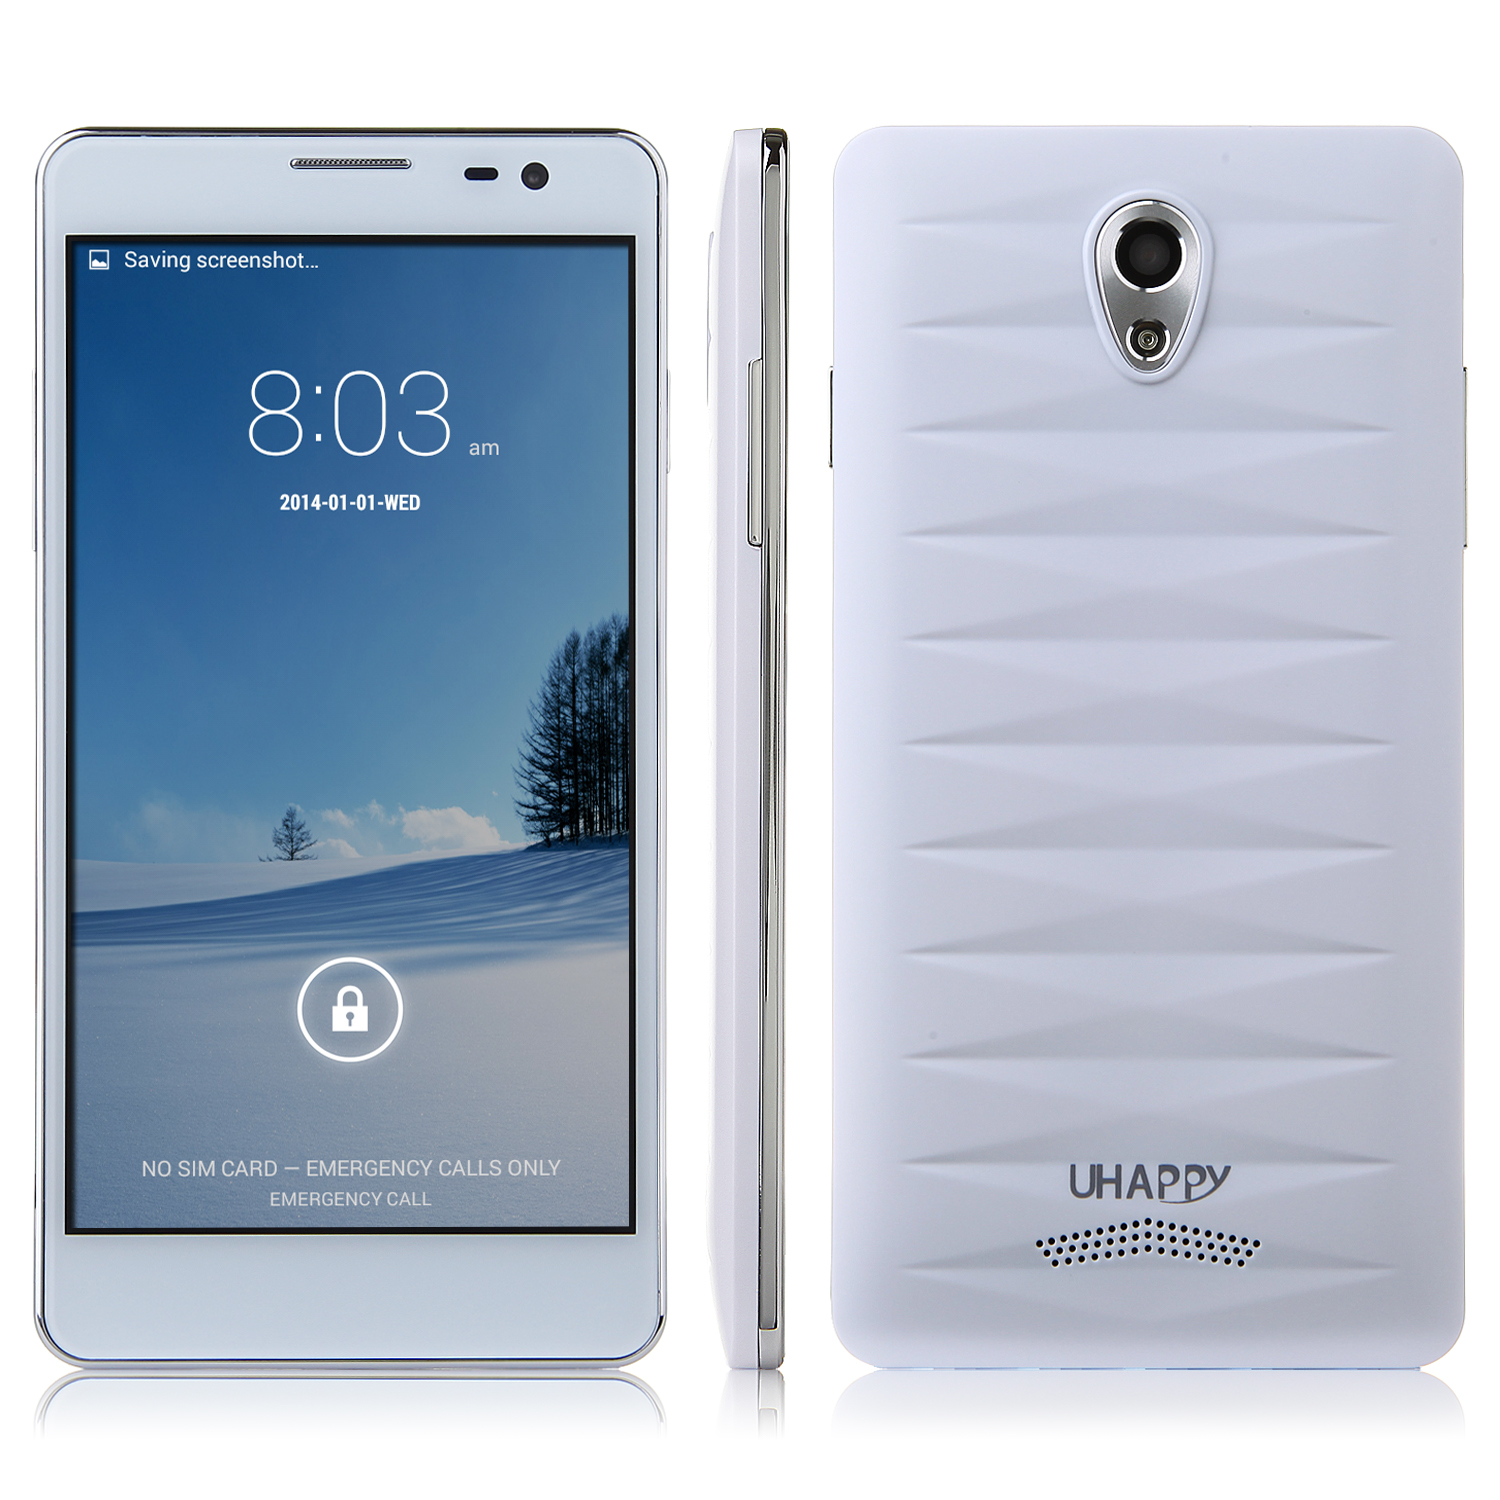 UHAPPY UP520 Smartphone 1GB 8GB Android 4.4 MTK6582 5.0 Inch QHD Screen OTG White